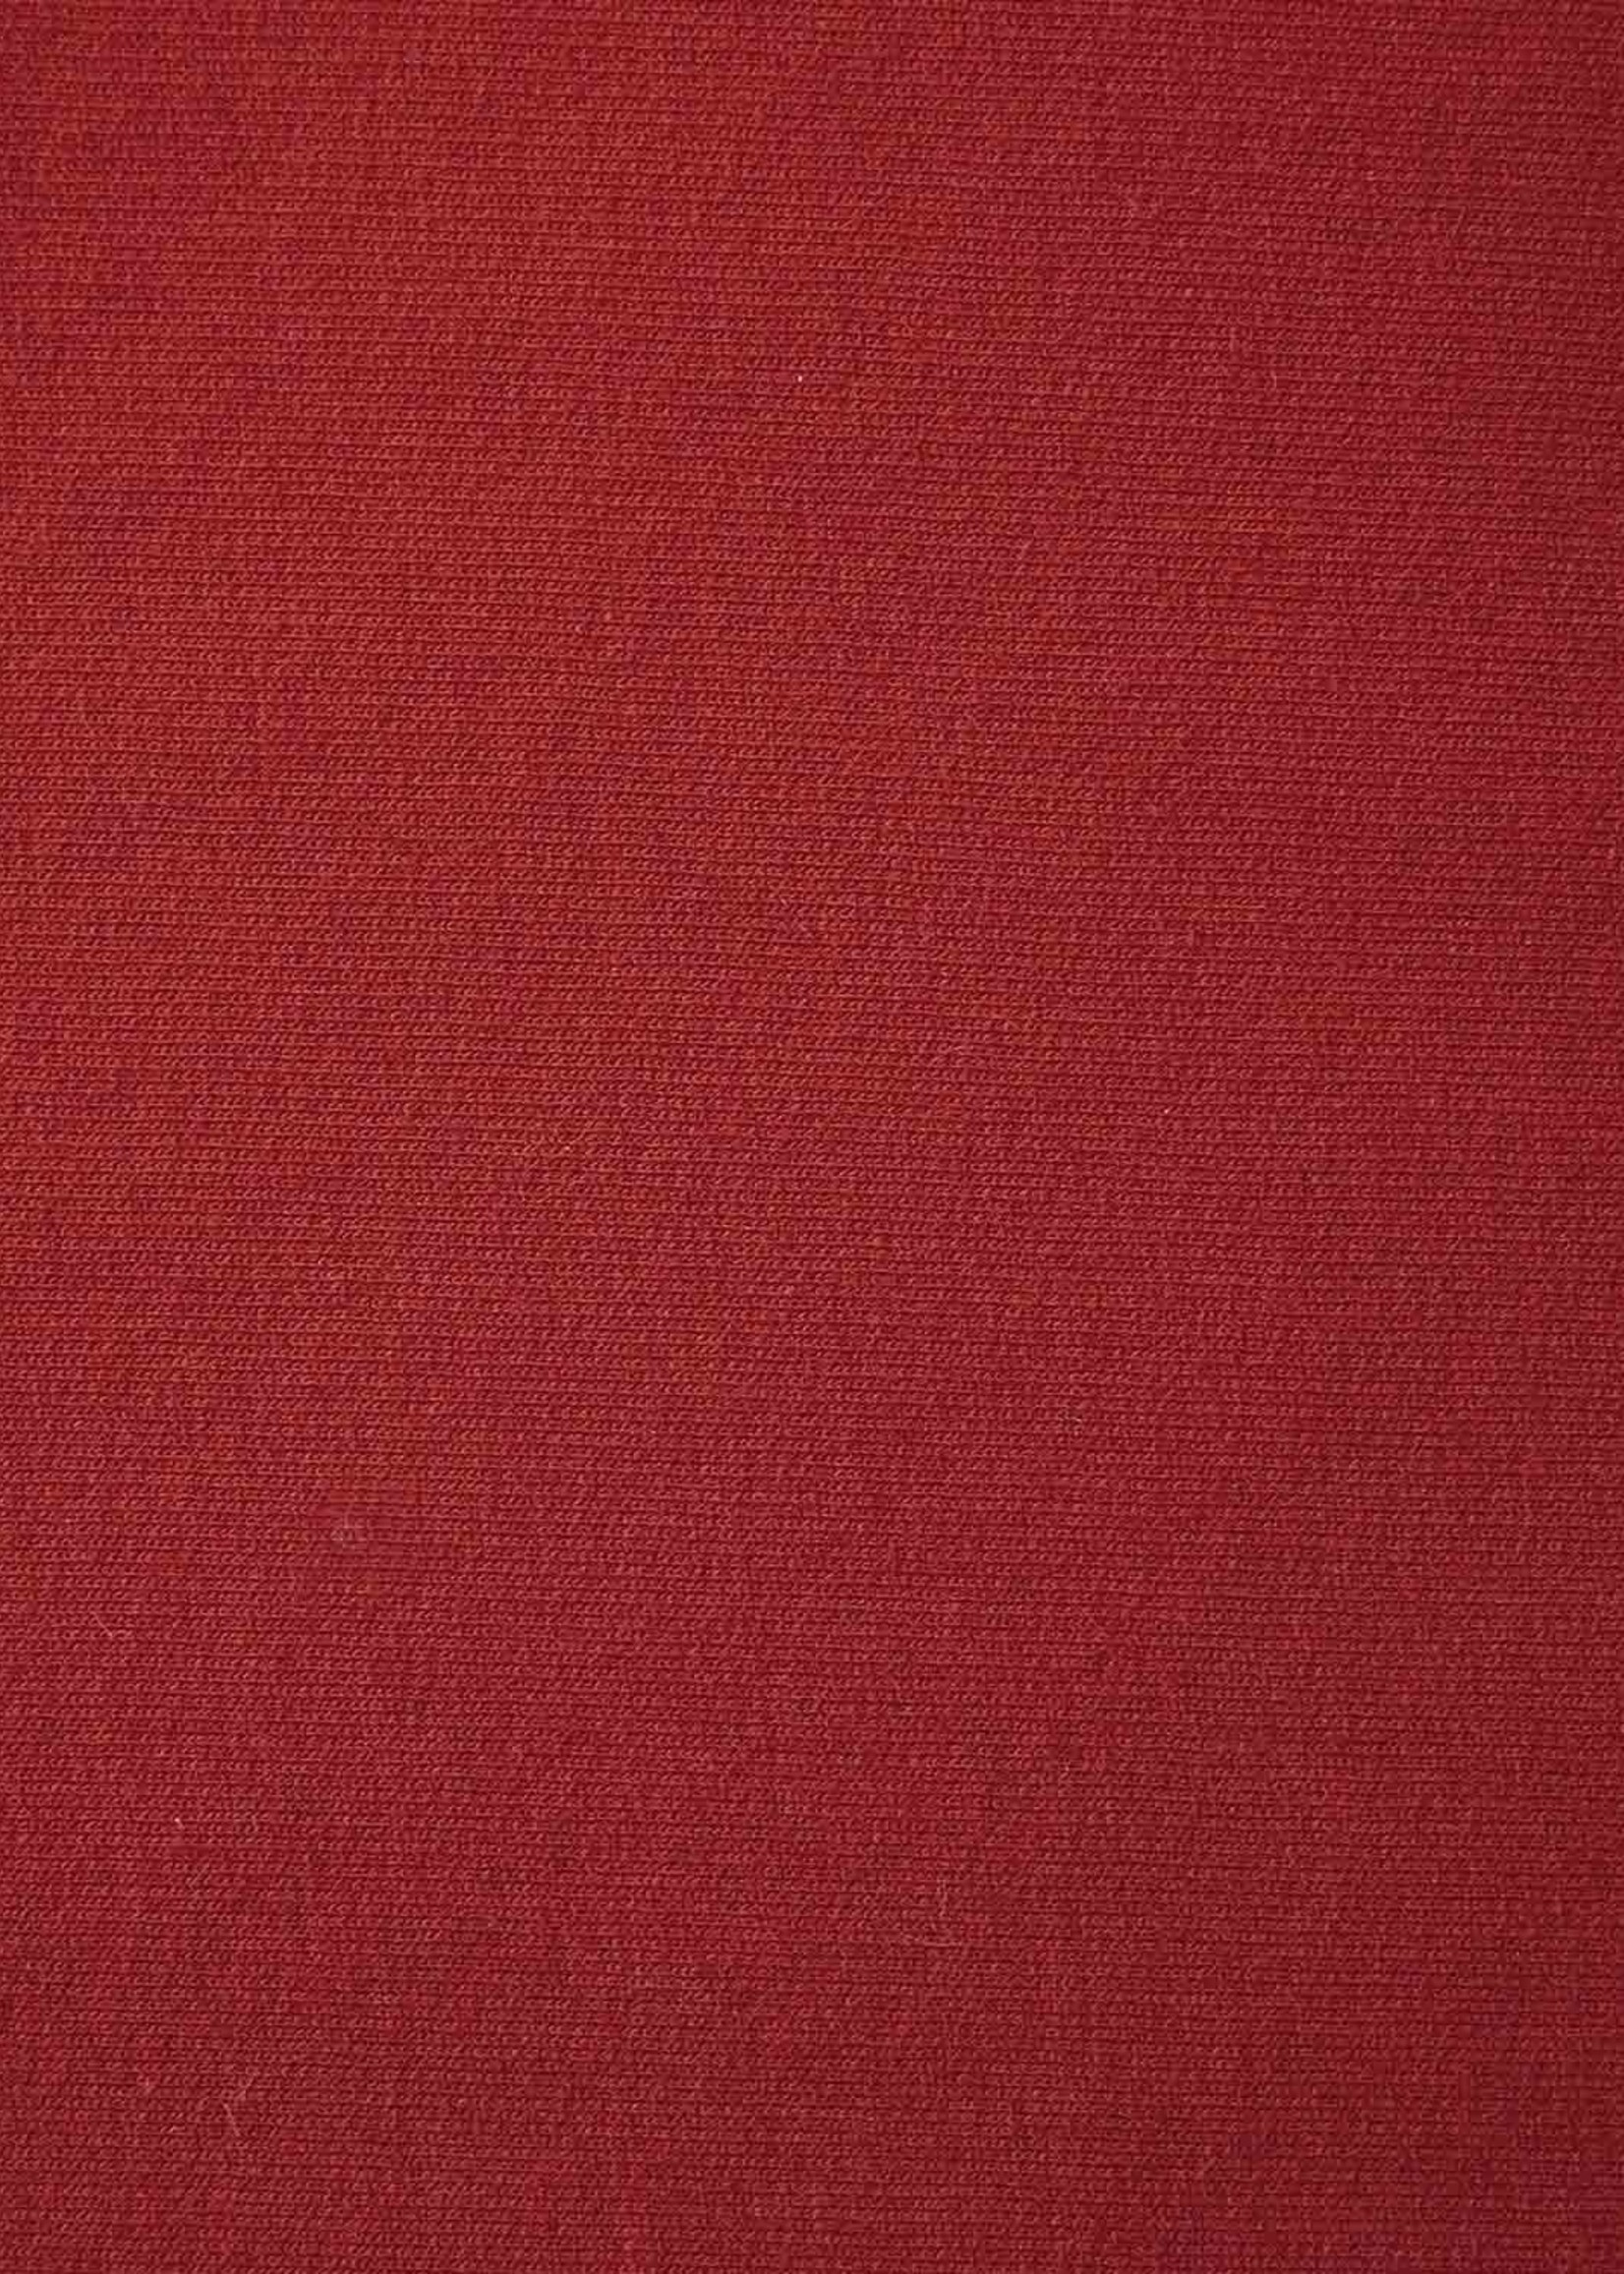 Katia Fabrics SOFT FRENCH TERRY SOLID CAYENNE